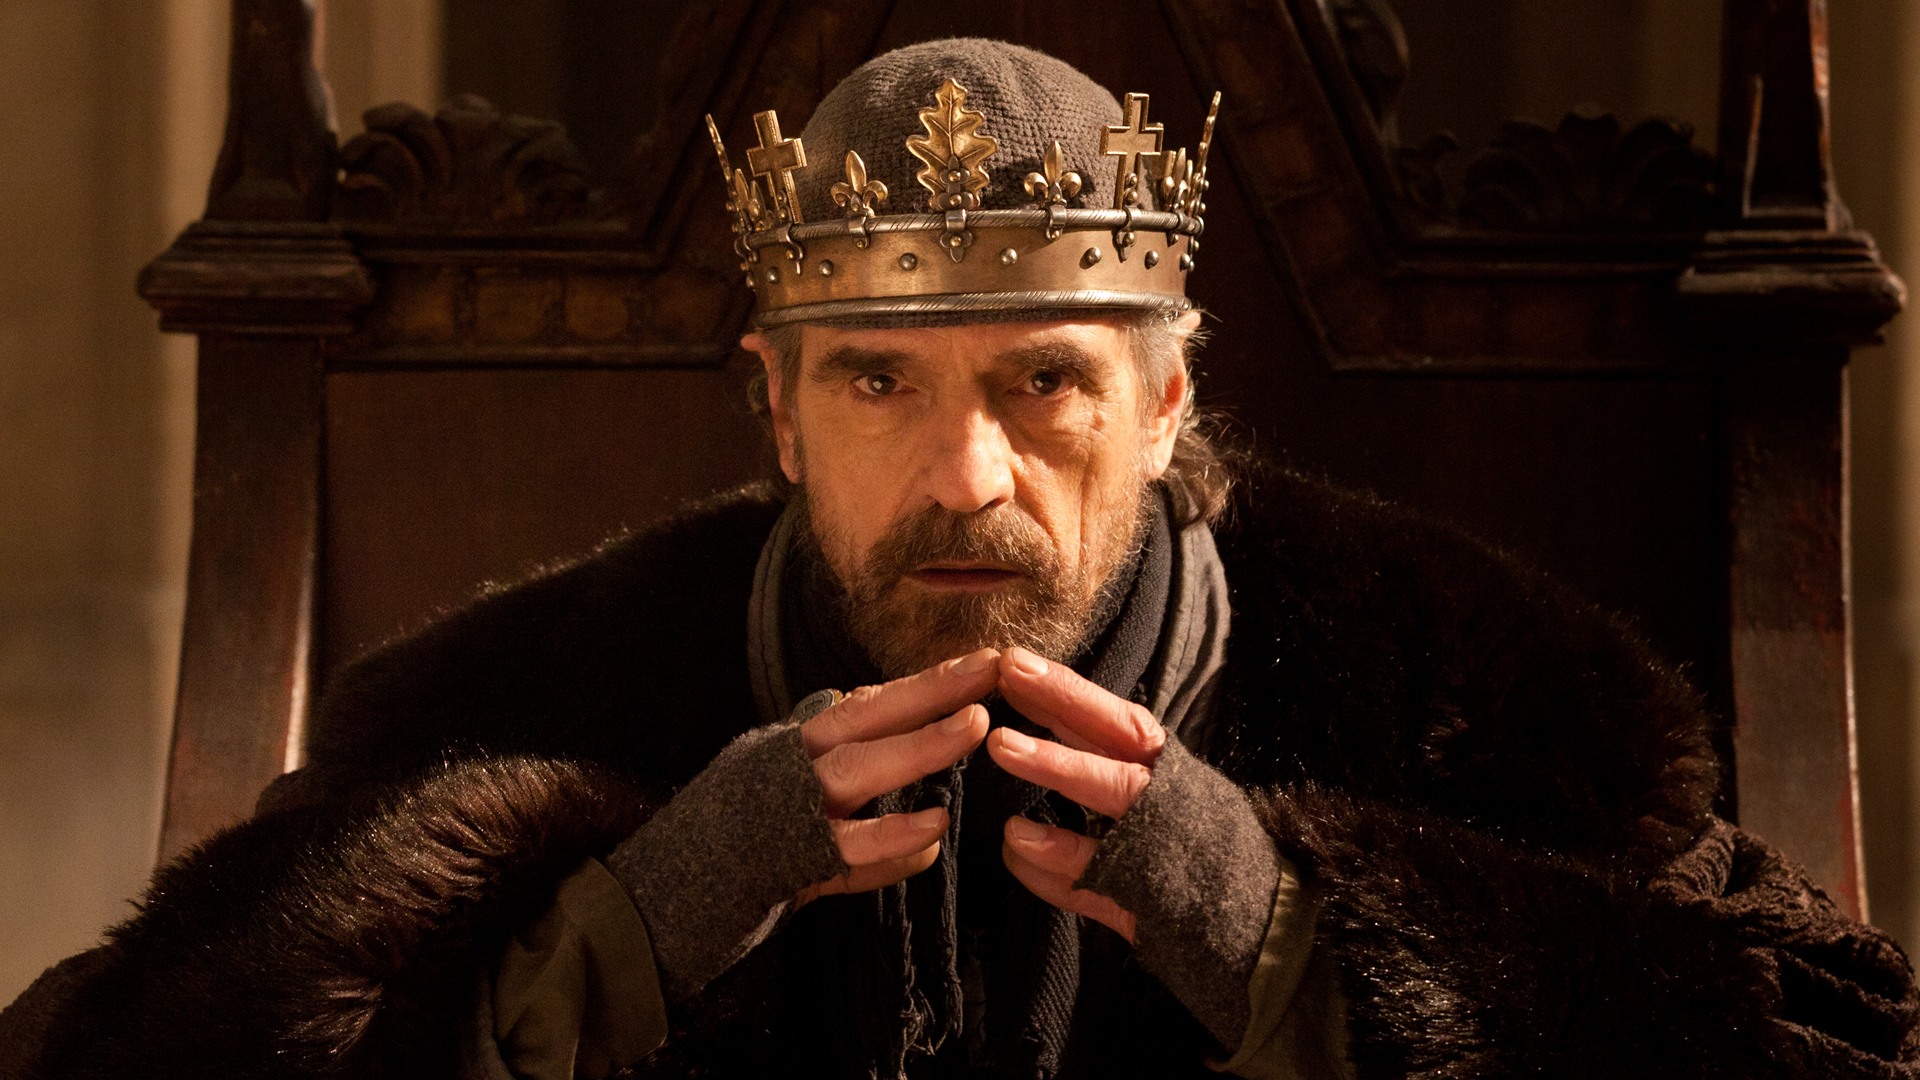 King Henry IV sitting on the throne while wearing his crown